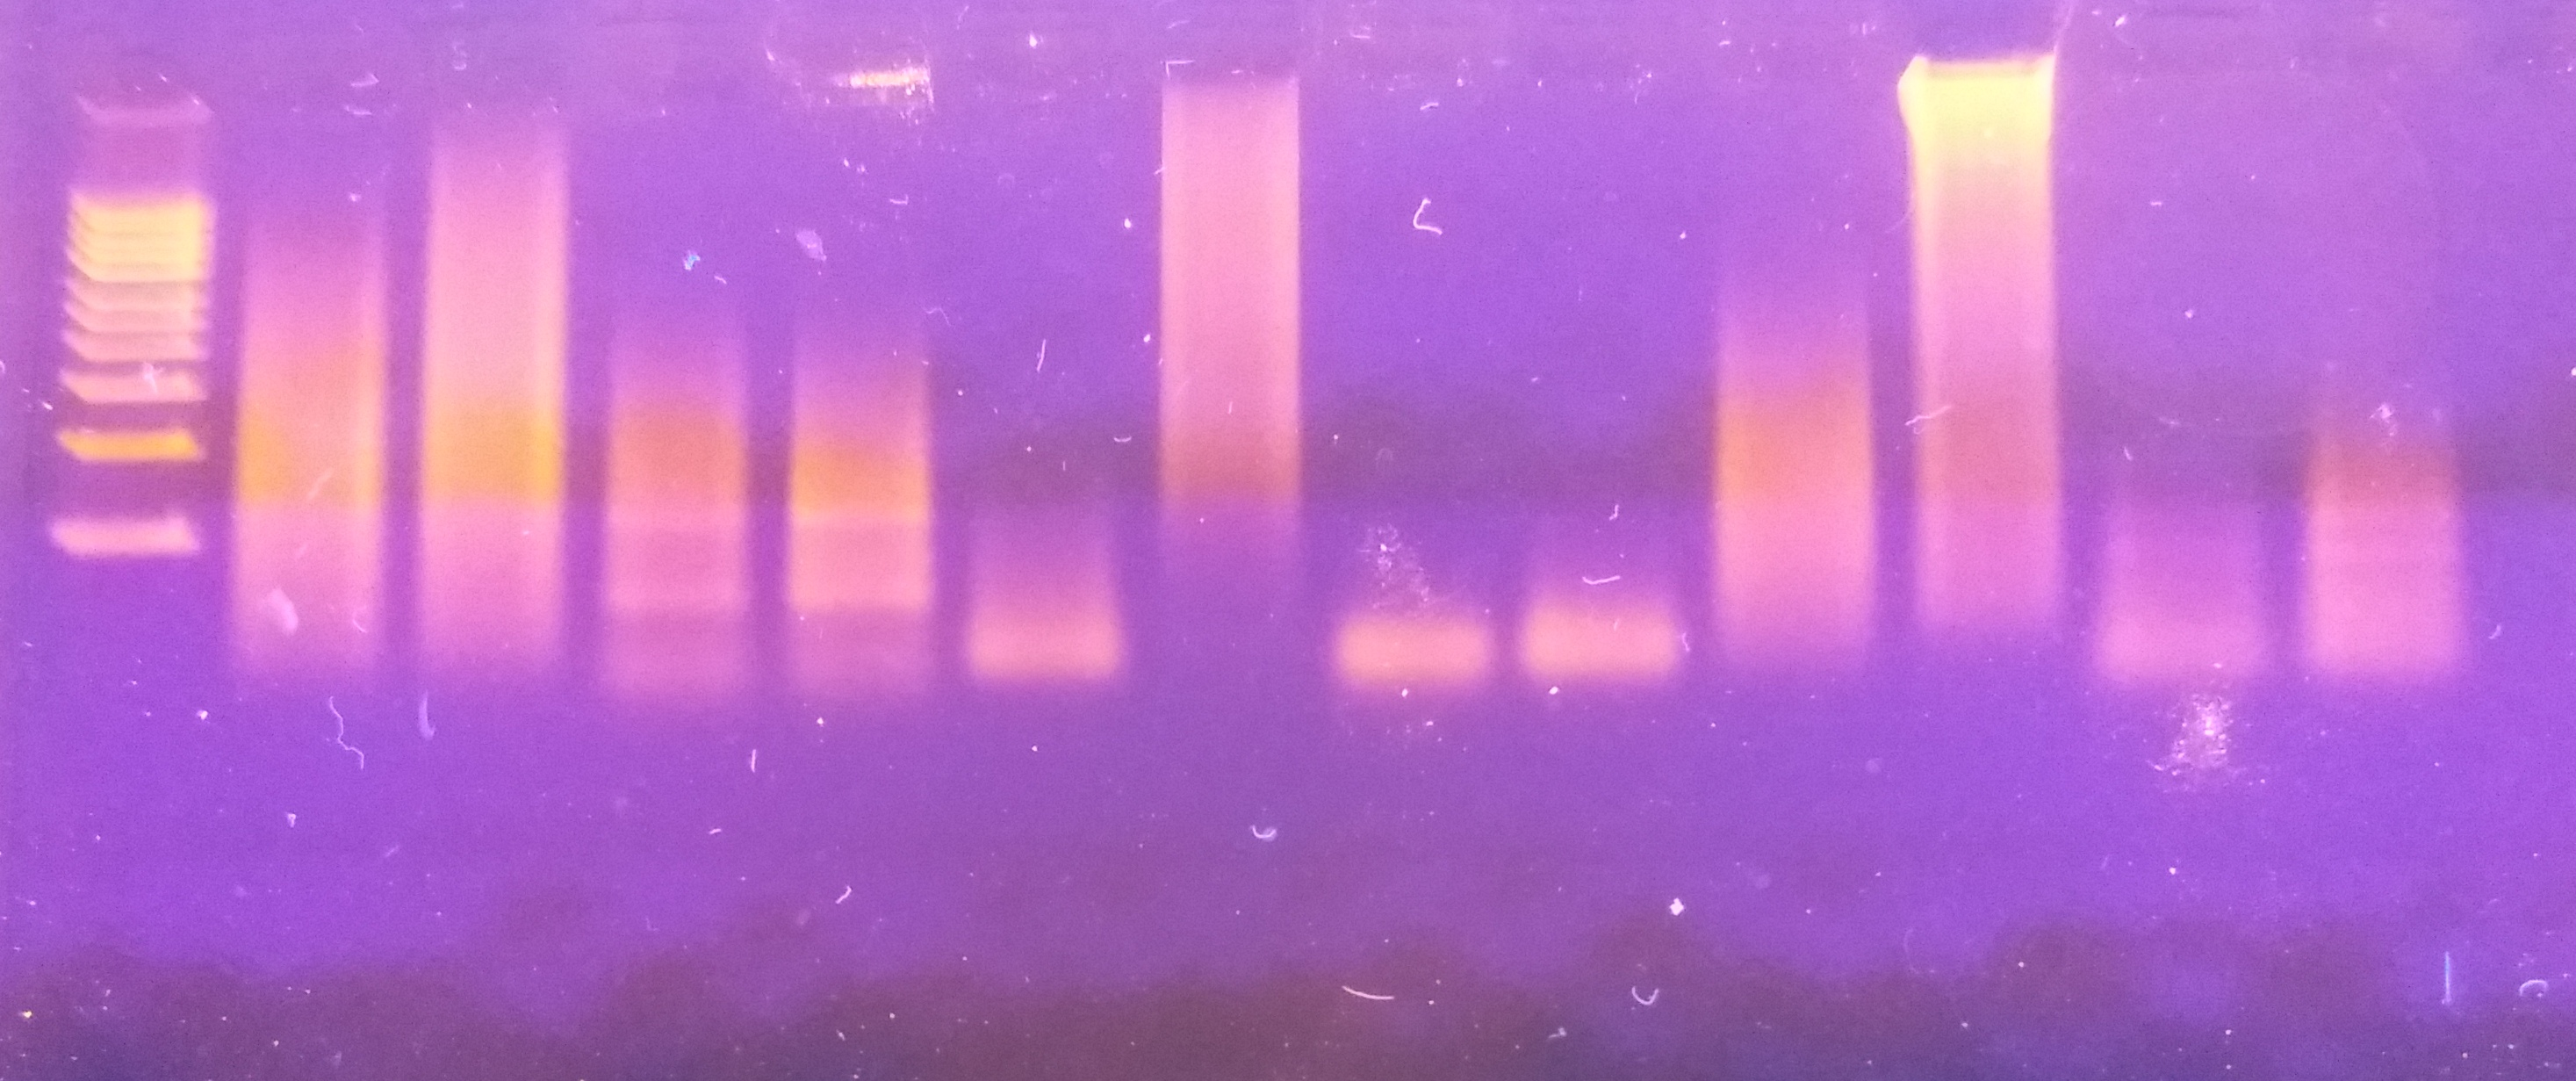 117 Questions With Answers In Sequencing Pcr